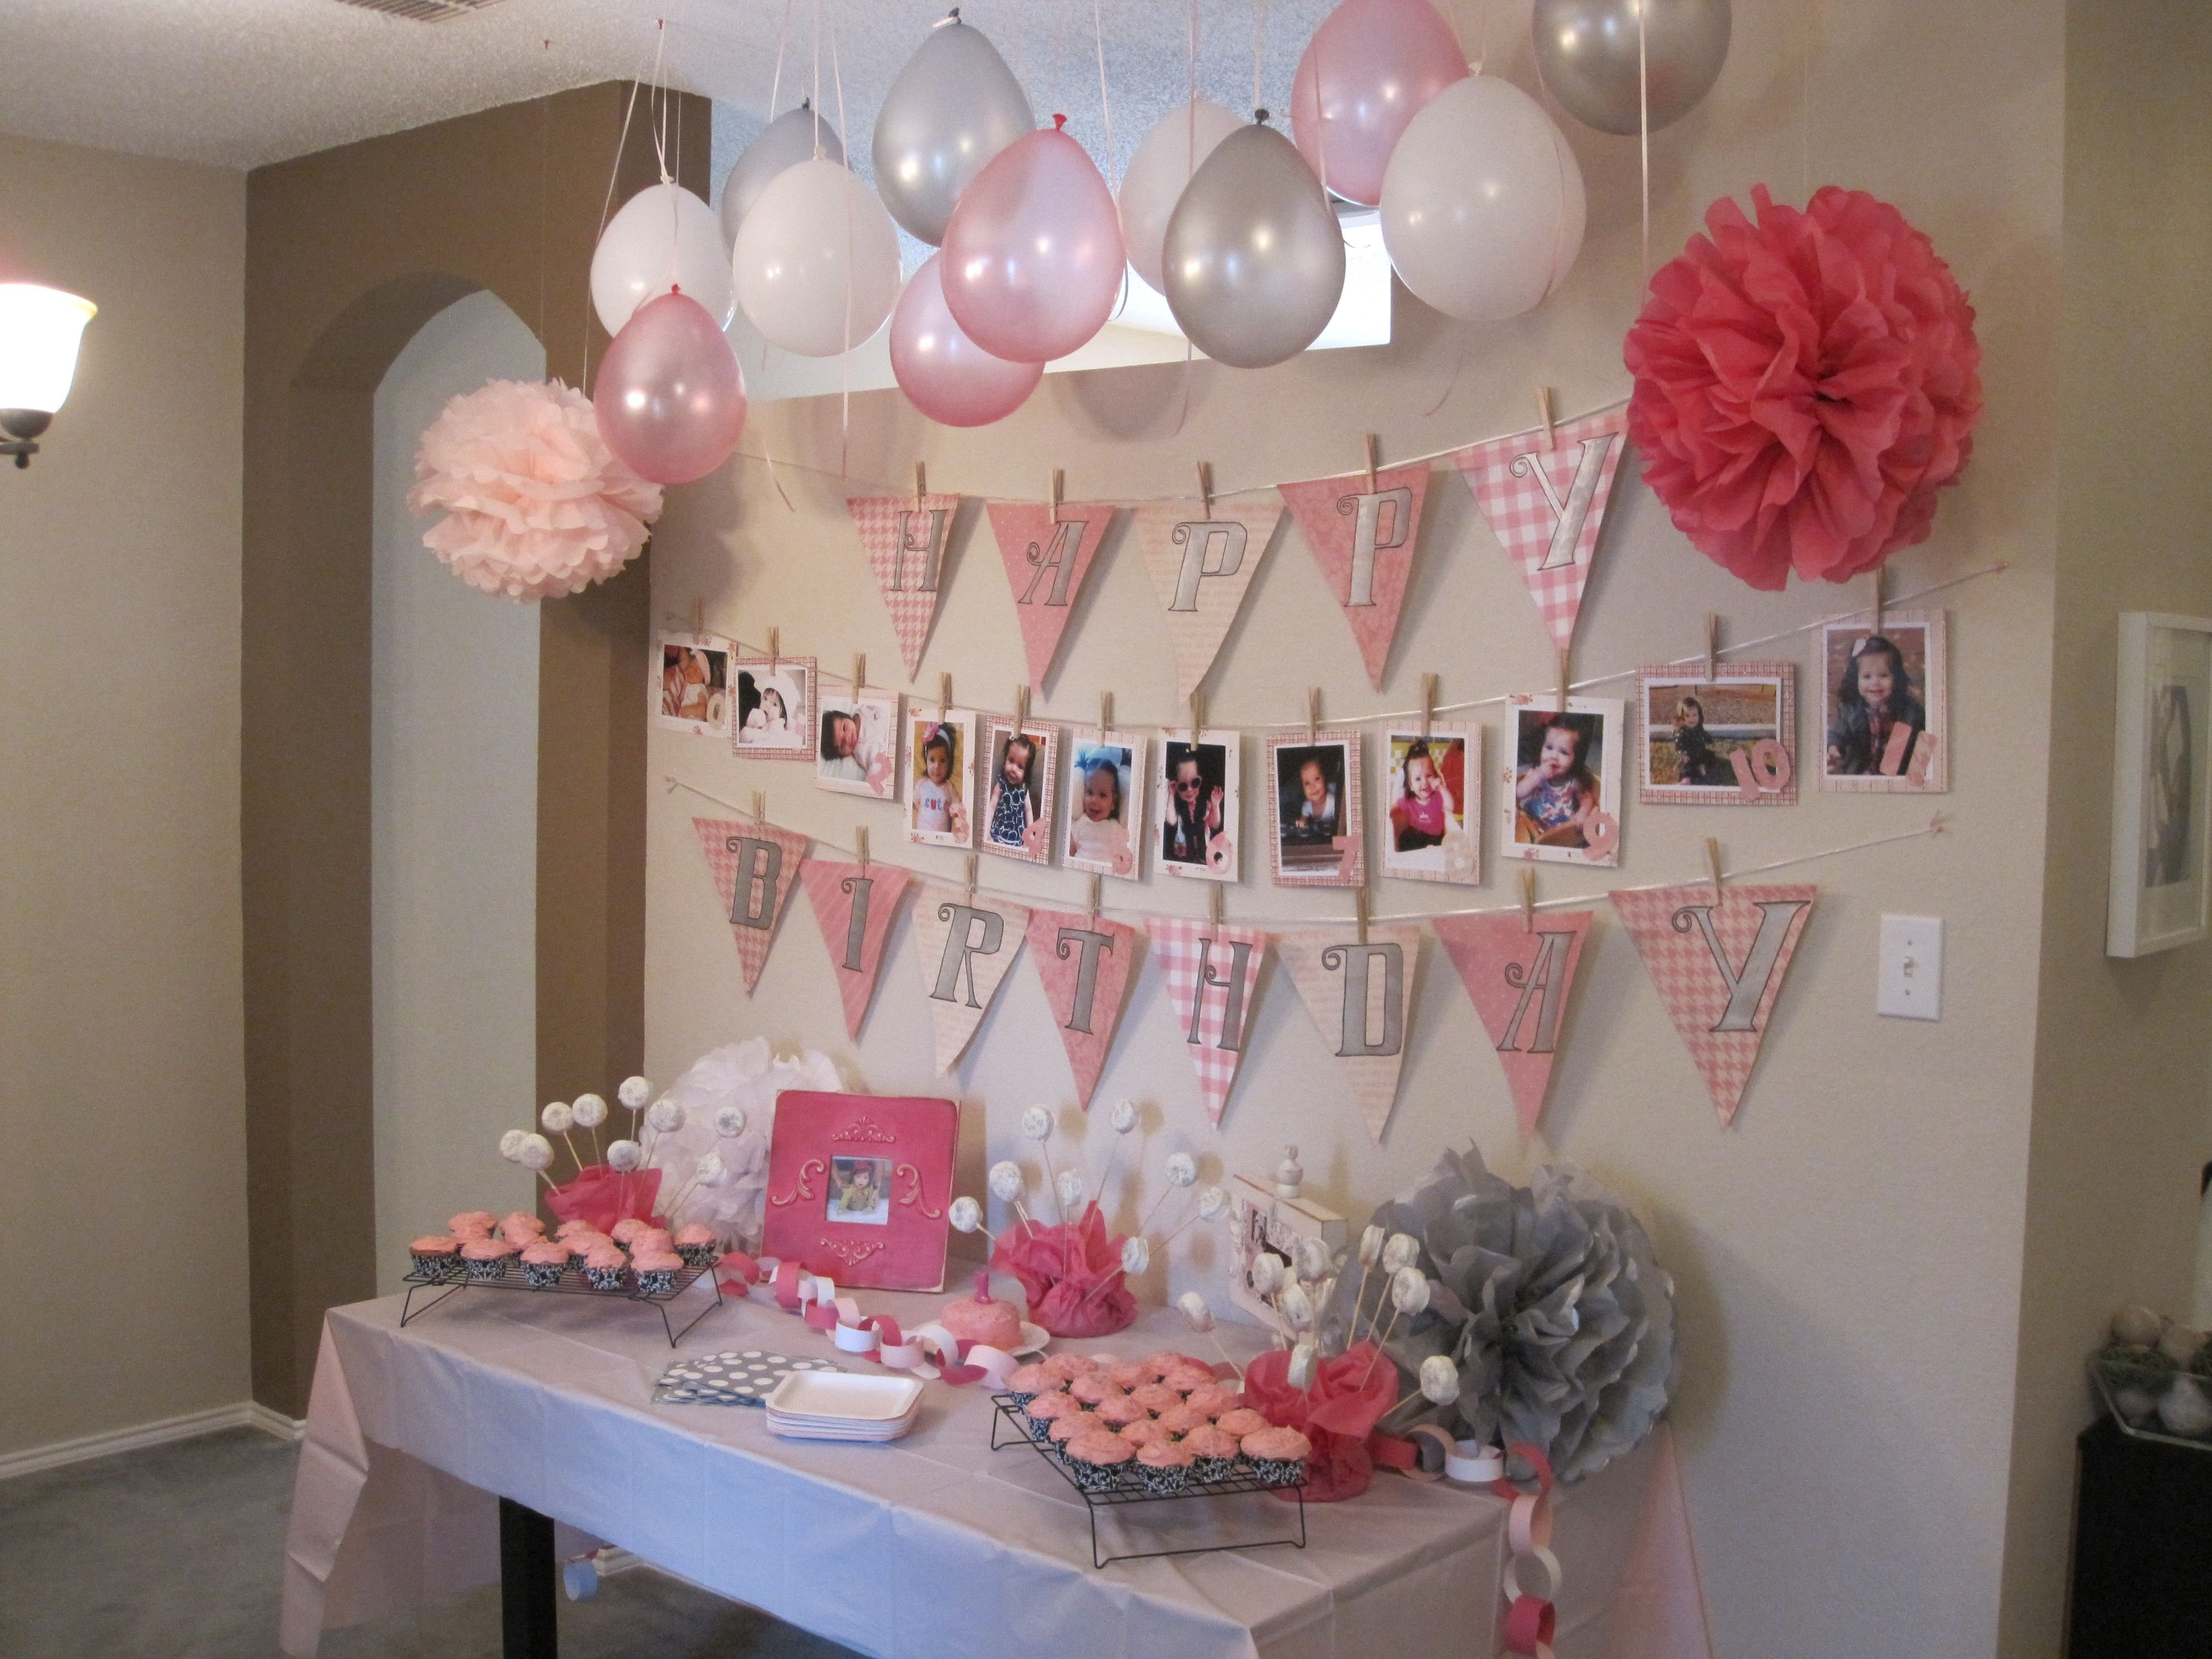 10 Lovely Baby Girl 1St Birthday Party Ideas actual decorations for my baby girls 1st bday party party 2021